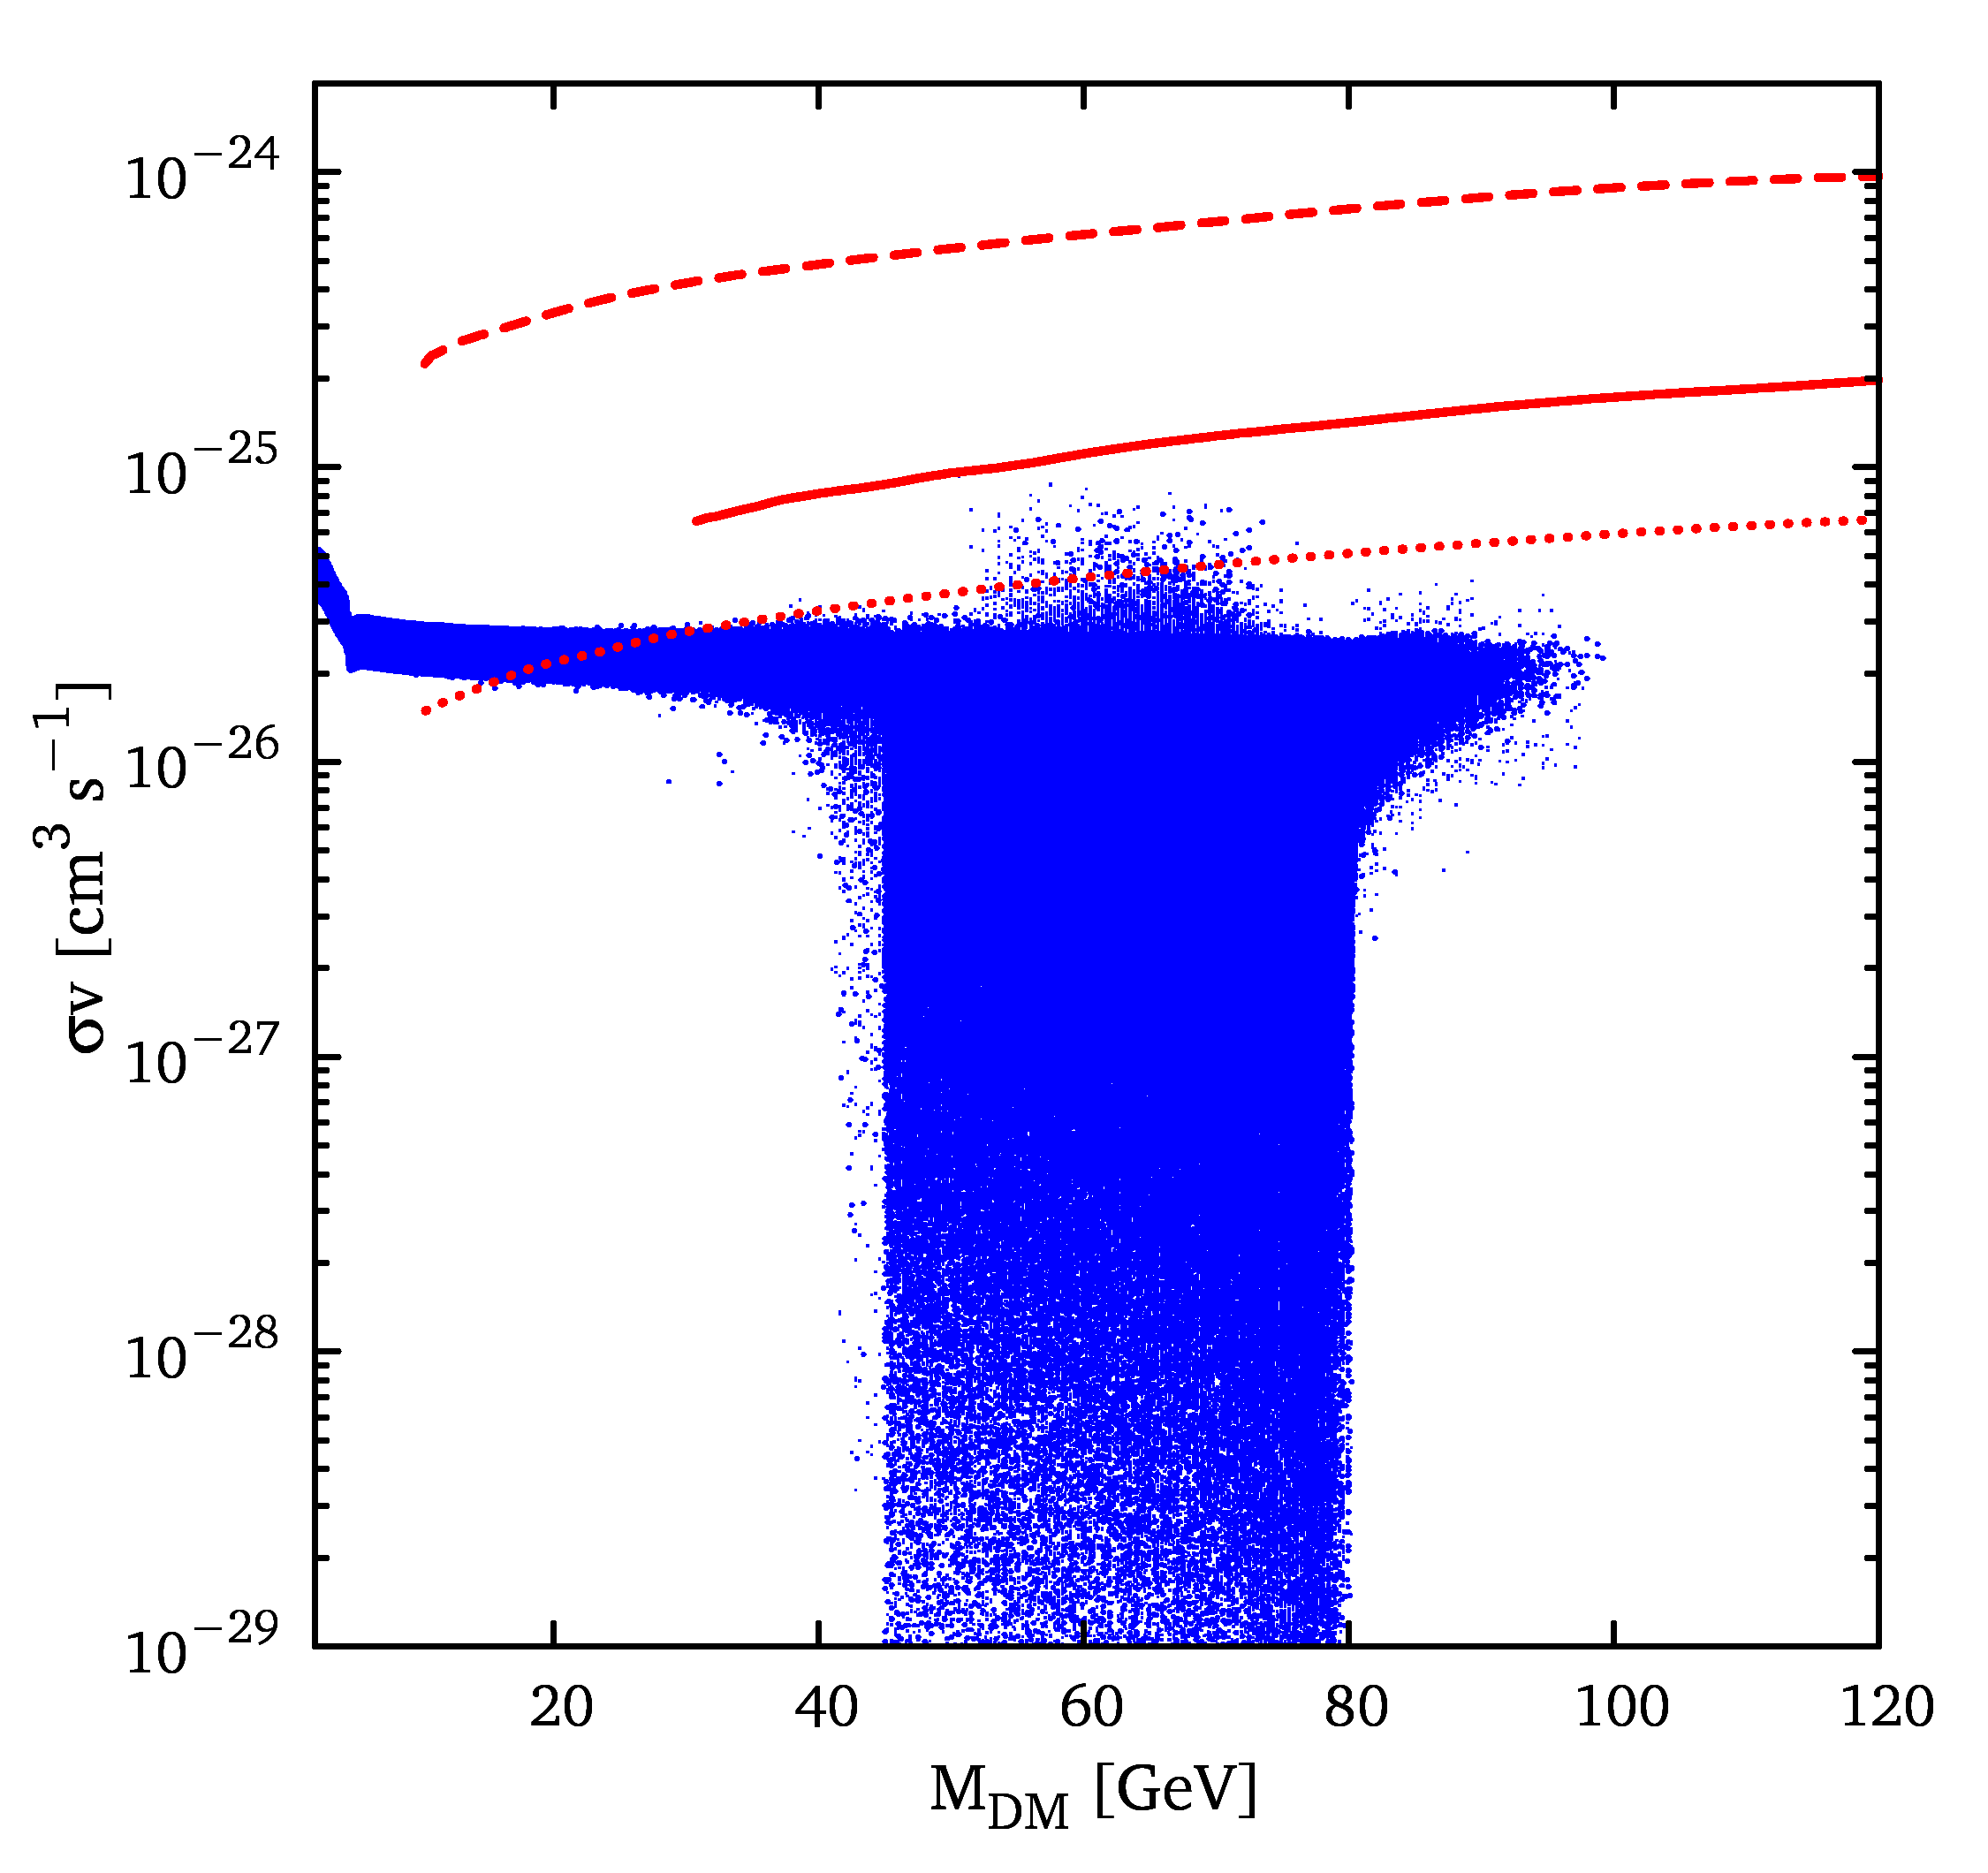 Left plot: Spin-independent DM scattering cross section off-protons as a function of the dark matter mass. The orange regions delimited by the dashed (solid) line show the DAMA/LIBRA annual modulation regions including (neglecting) the channeling effect